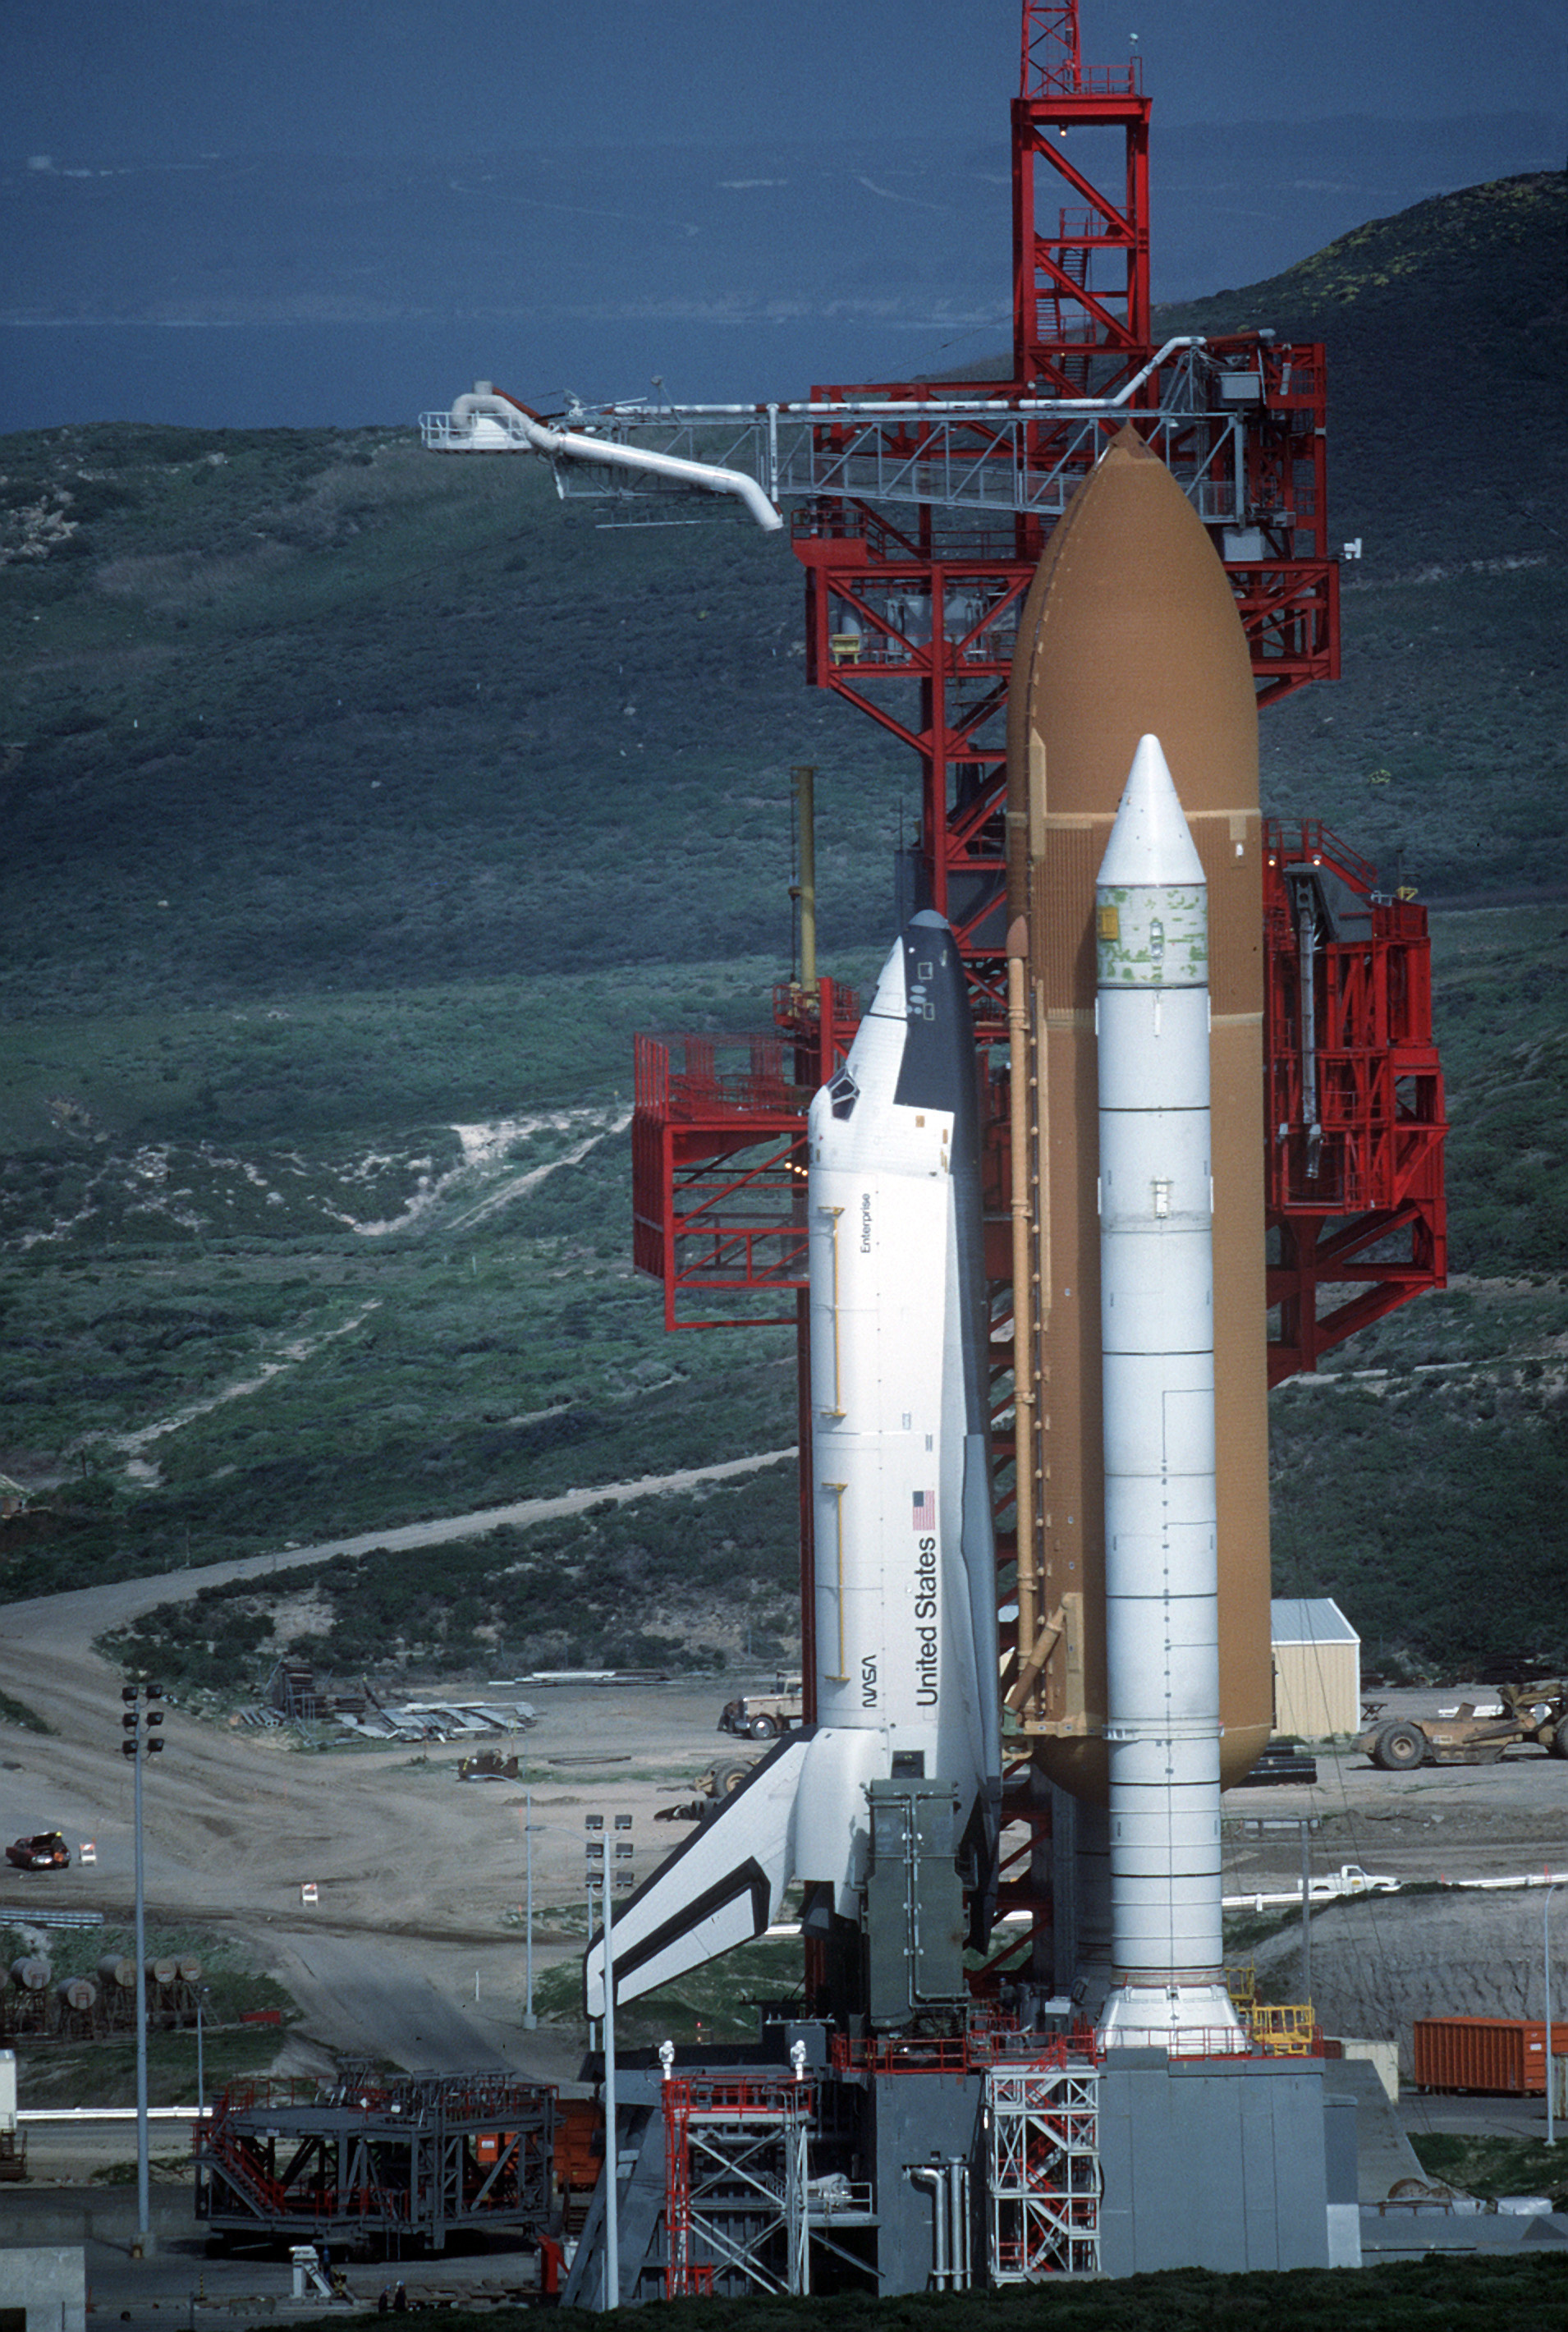 space shuttle at vandenberg - photo #1